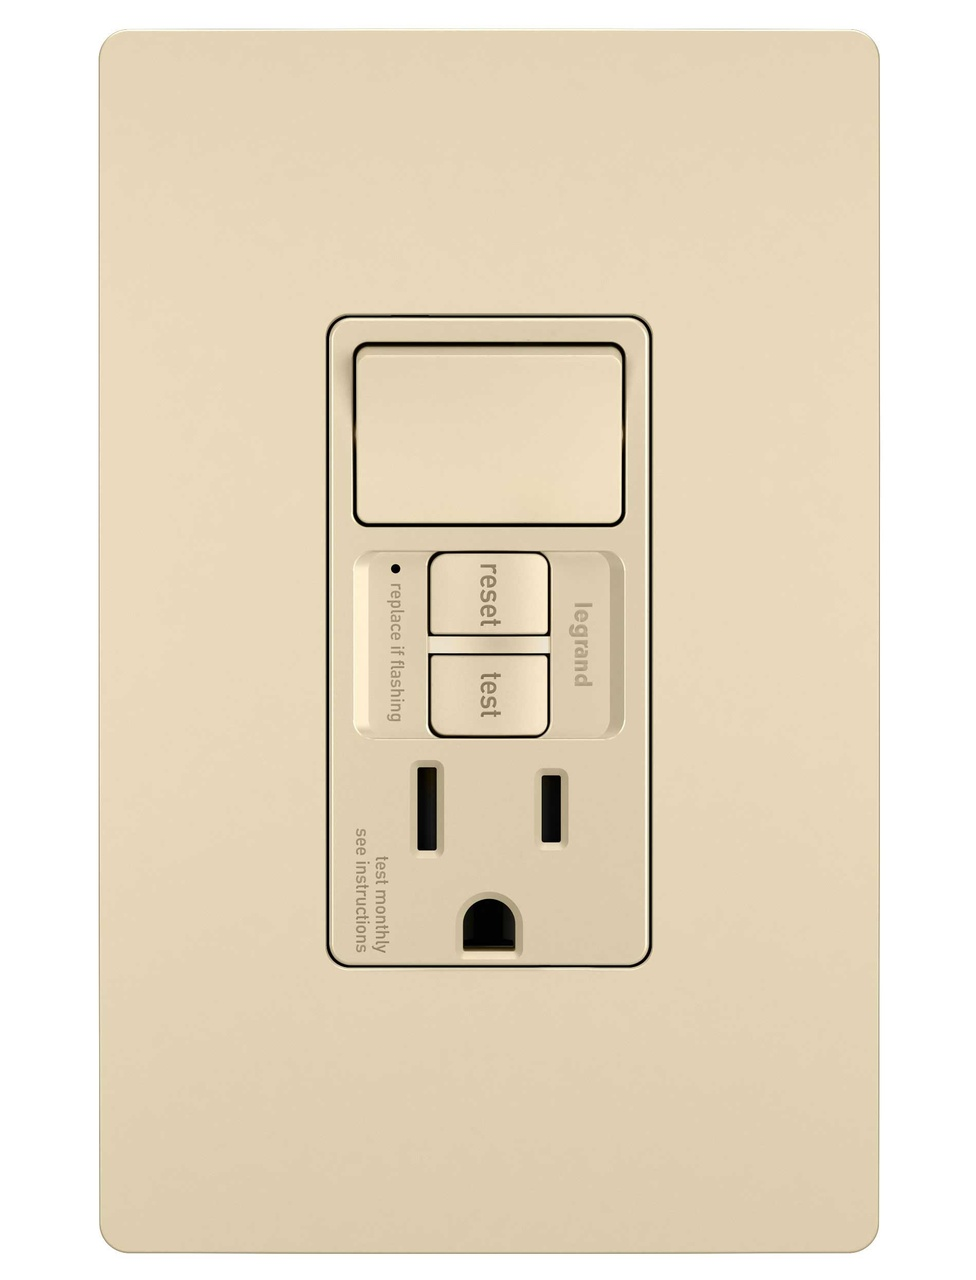 Combination Tamper-Resistant 15A Self-Test Single-Pole Switch/GFCI, Ivory